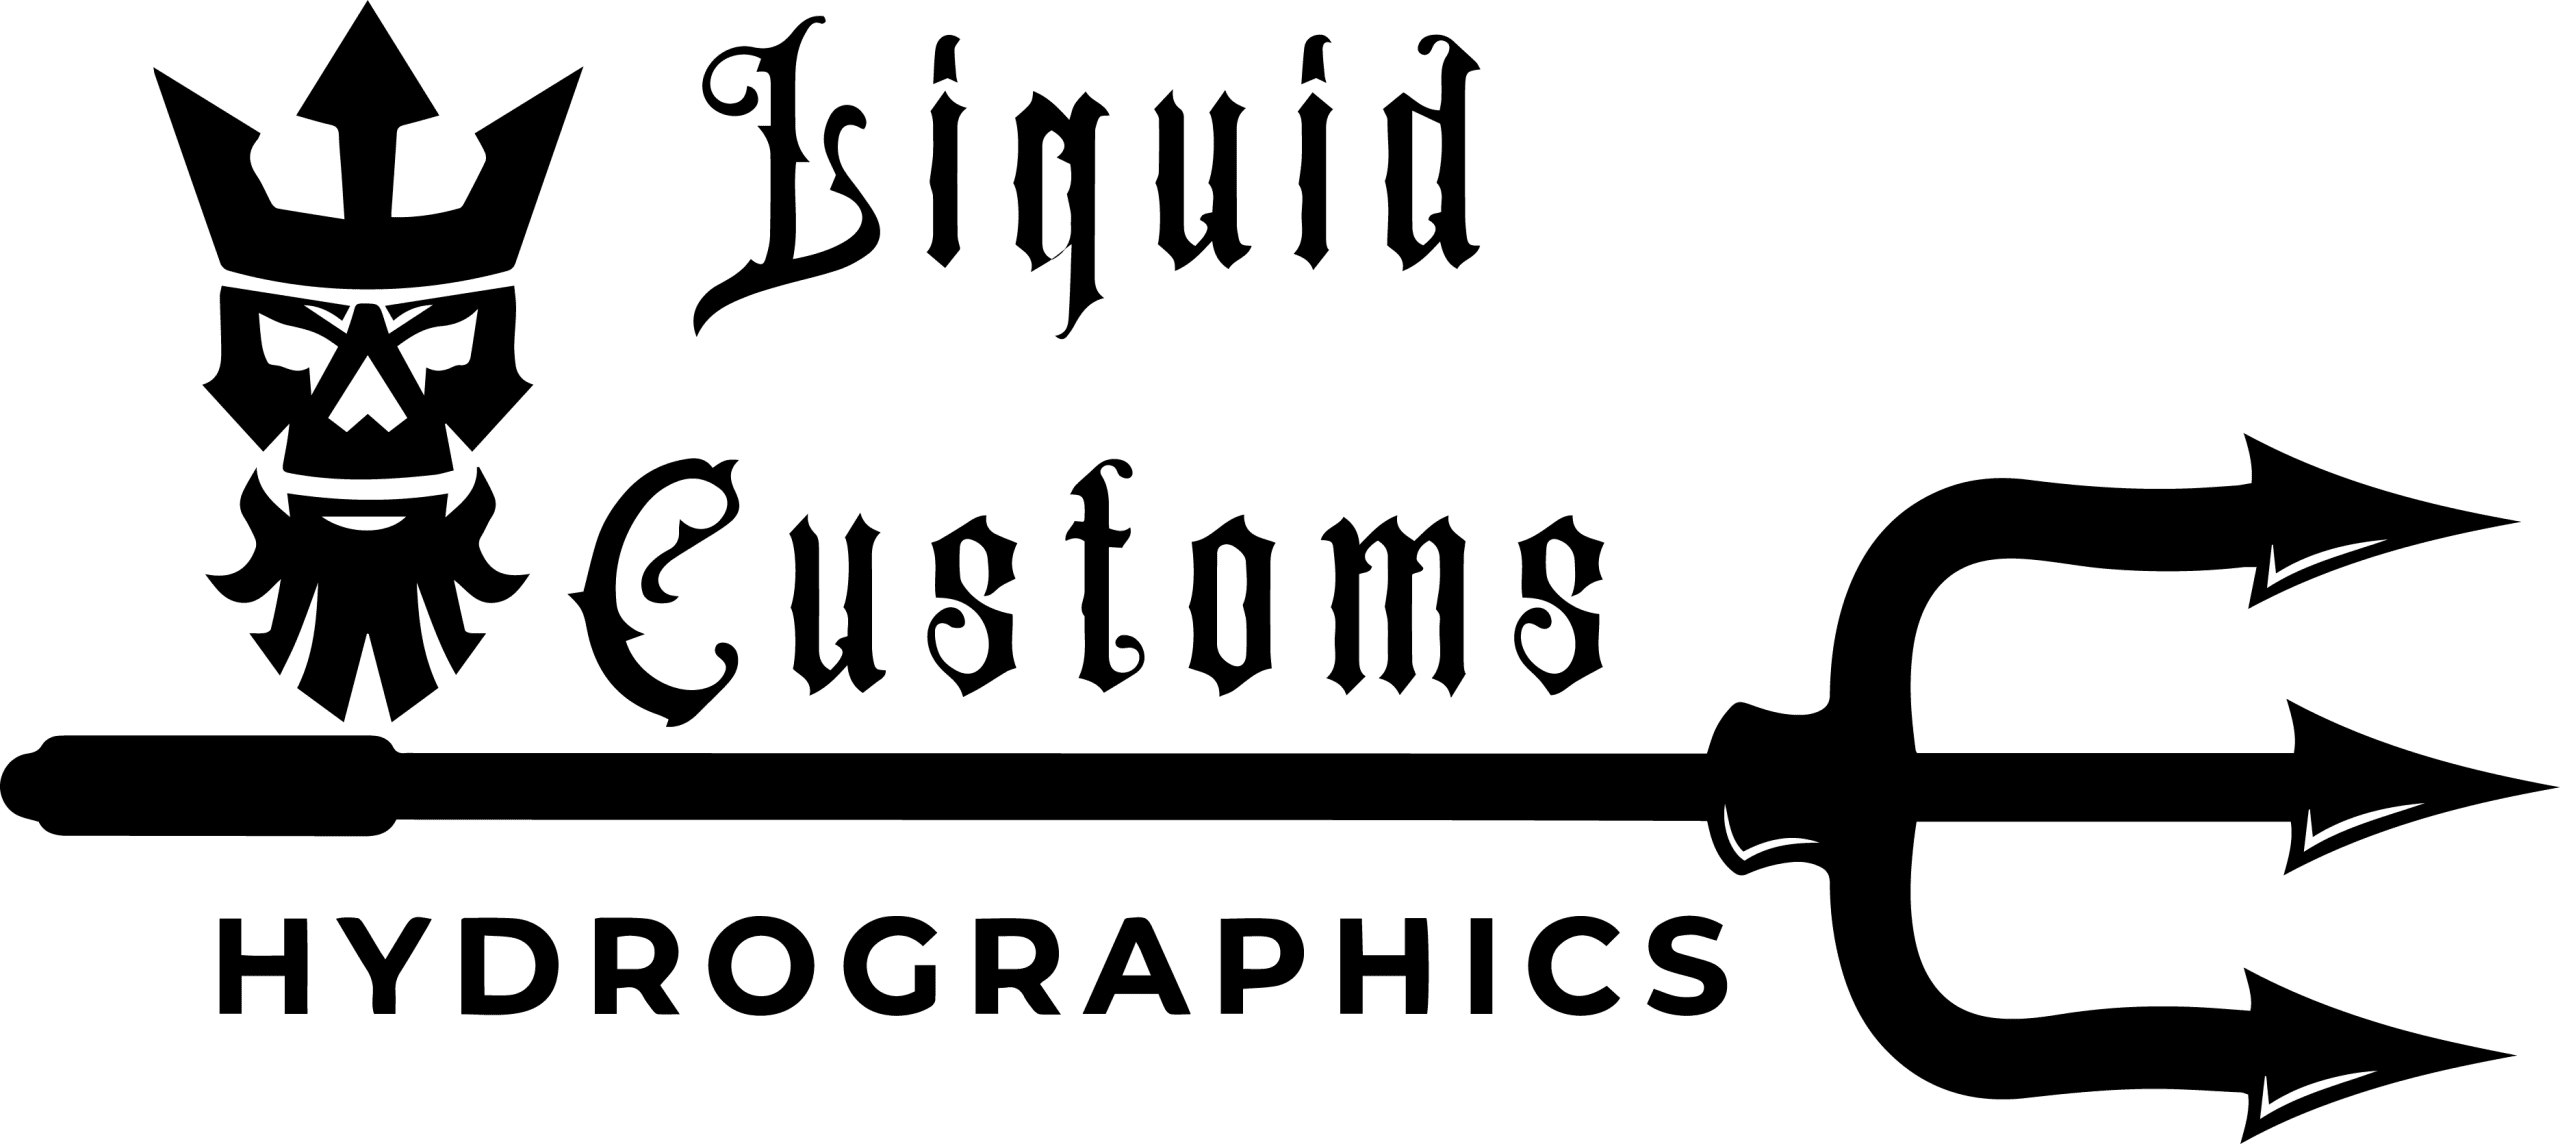 Liquid Customs, Inc.